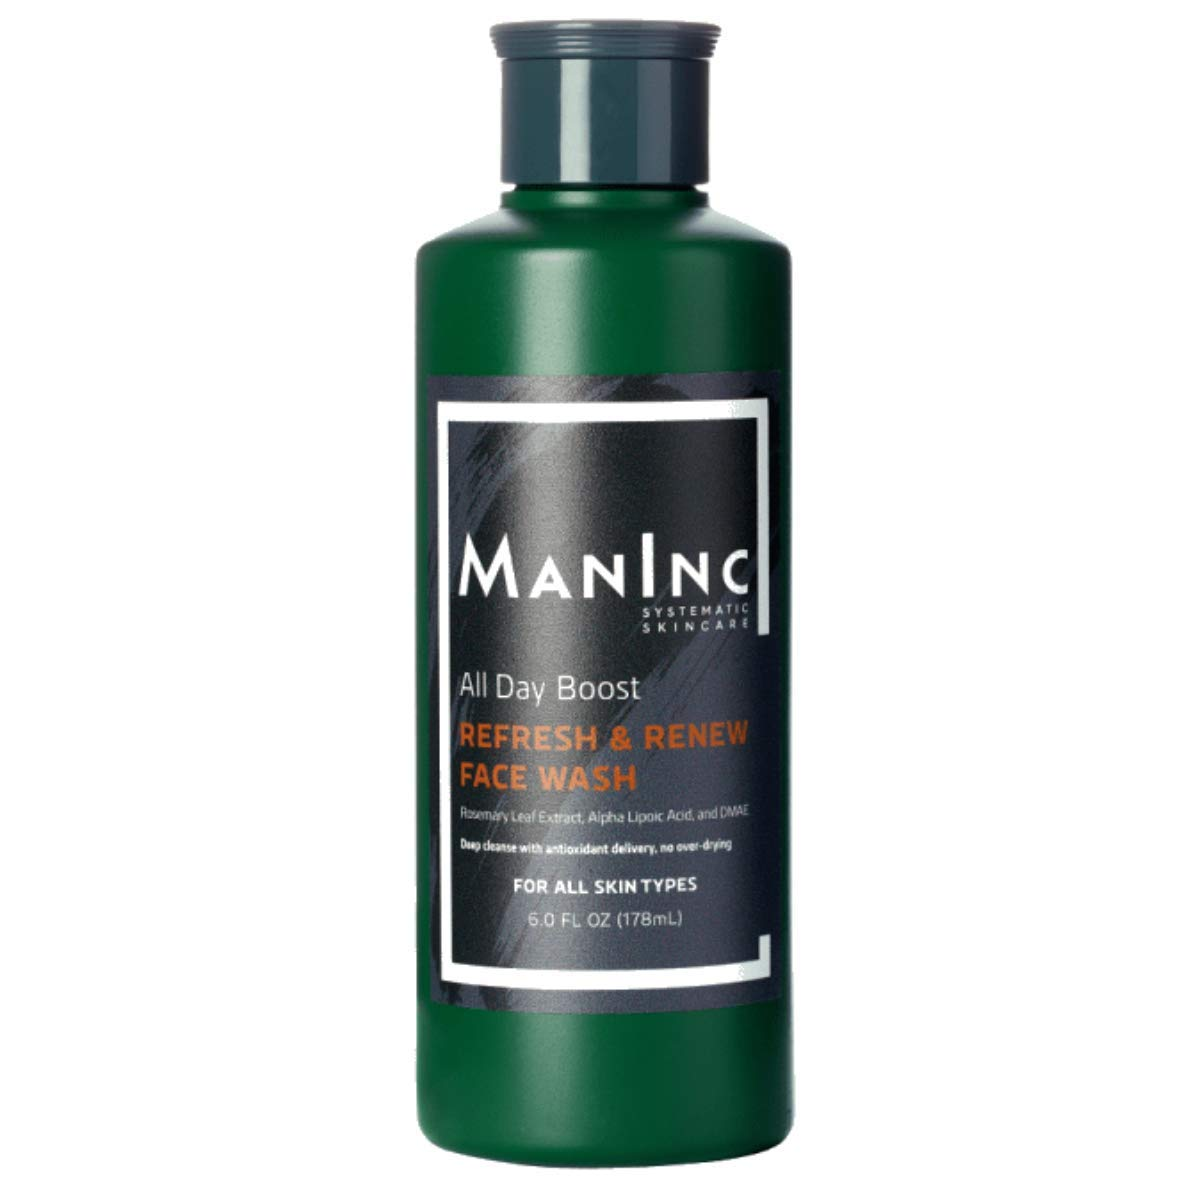 MAN INC Face Wash Cleanser for Oily Acne Prone Skin to Reduce Acne Scars, Clarify Skin, Cleanse Pores, Oil Control To Reduce Breakouts for Normal, Oily and Acne Prone Skin, 6 oz